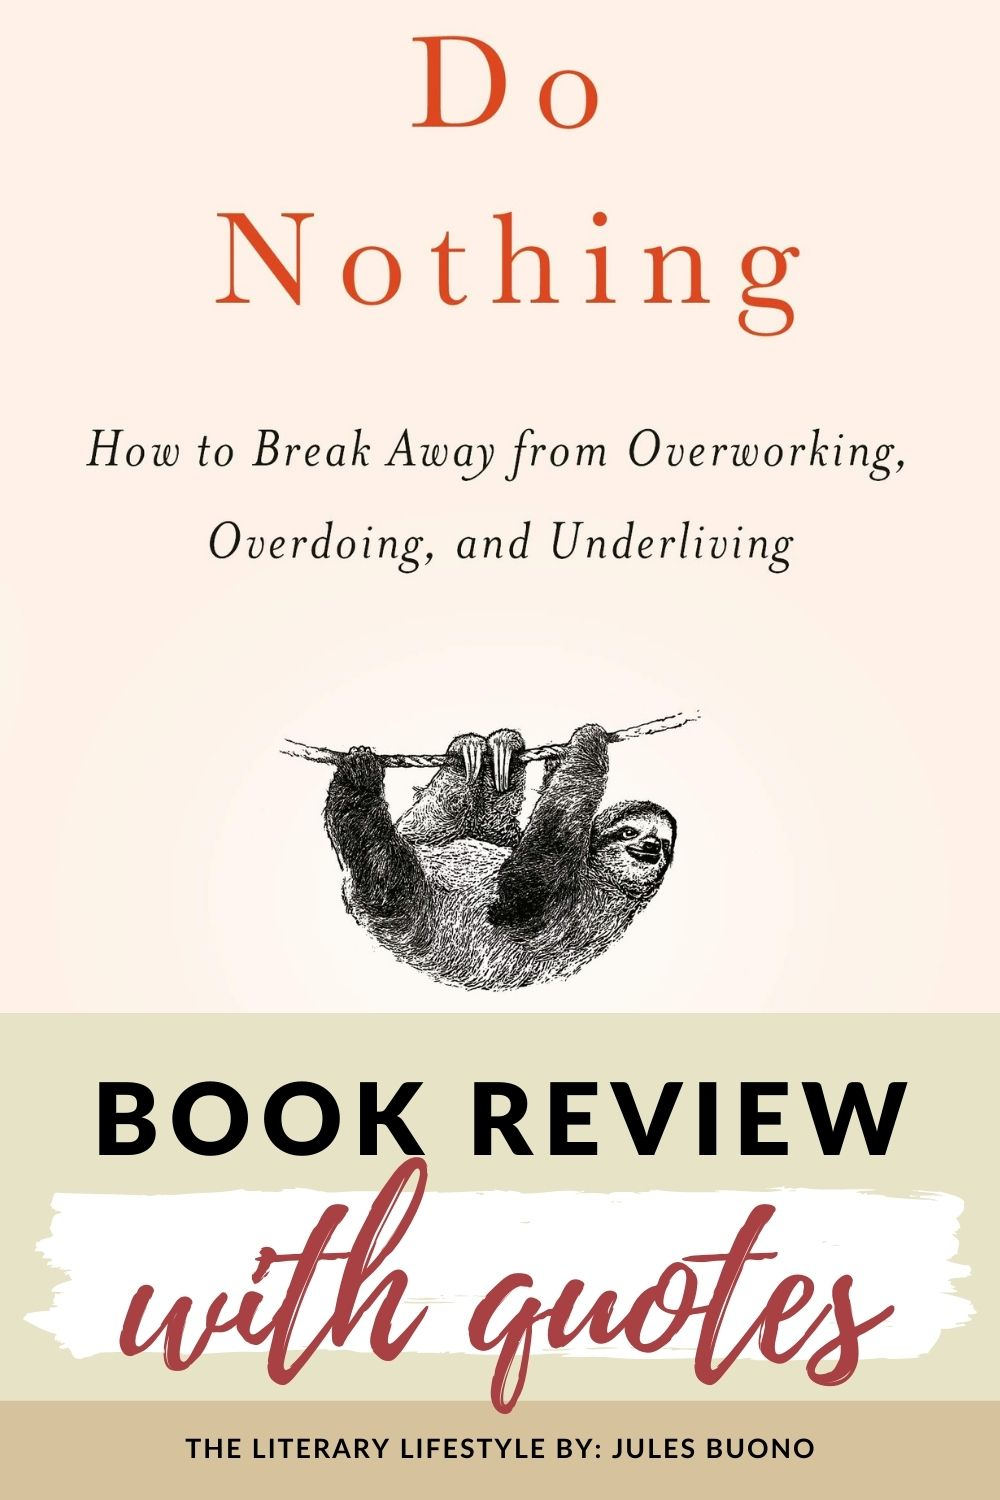 Do Nothing by Celeste Headlee Book Review